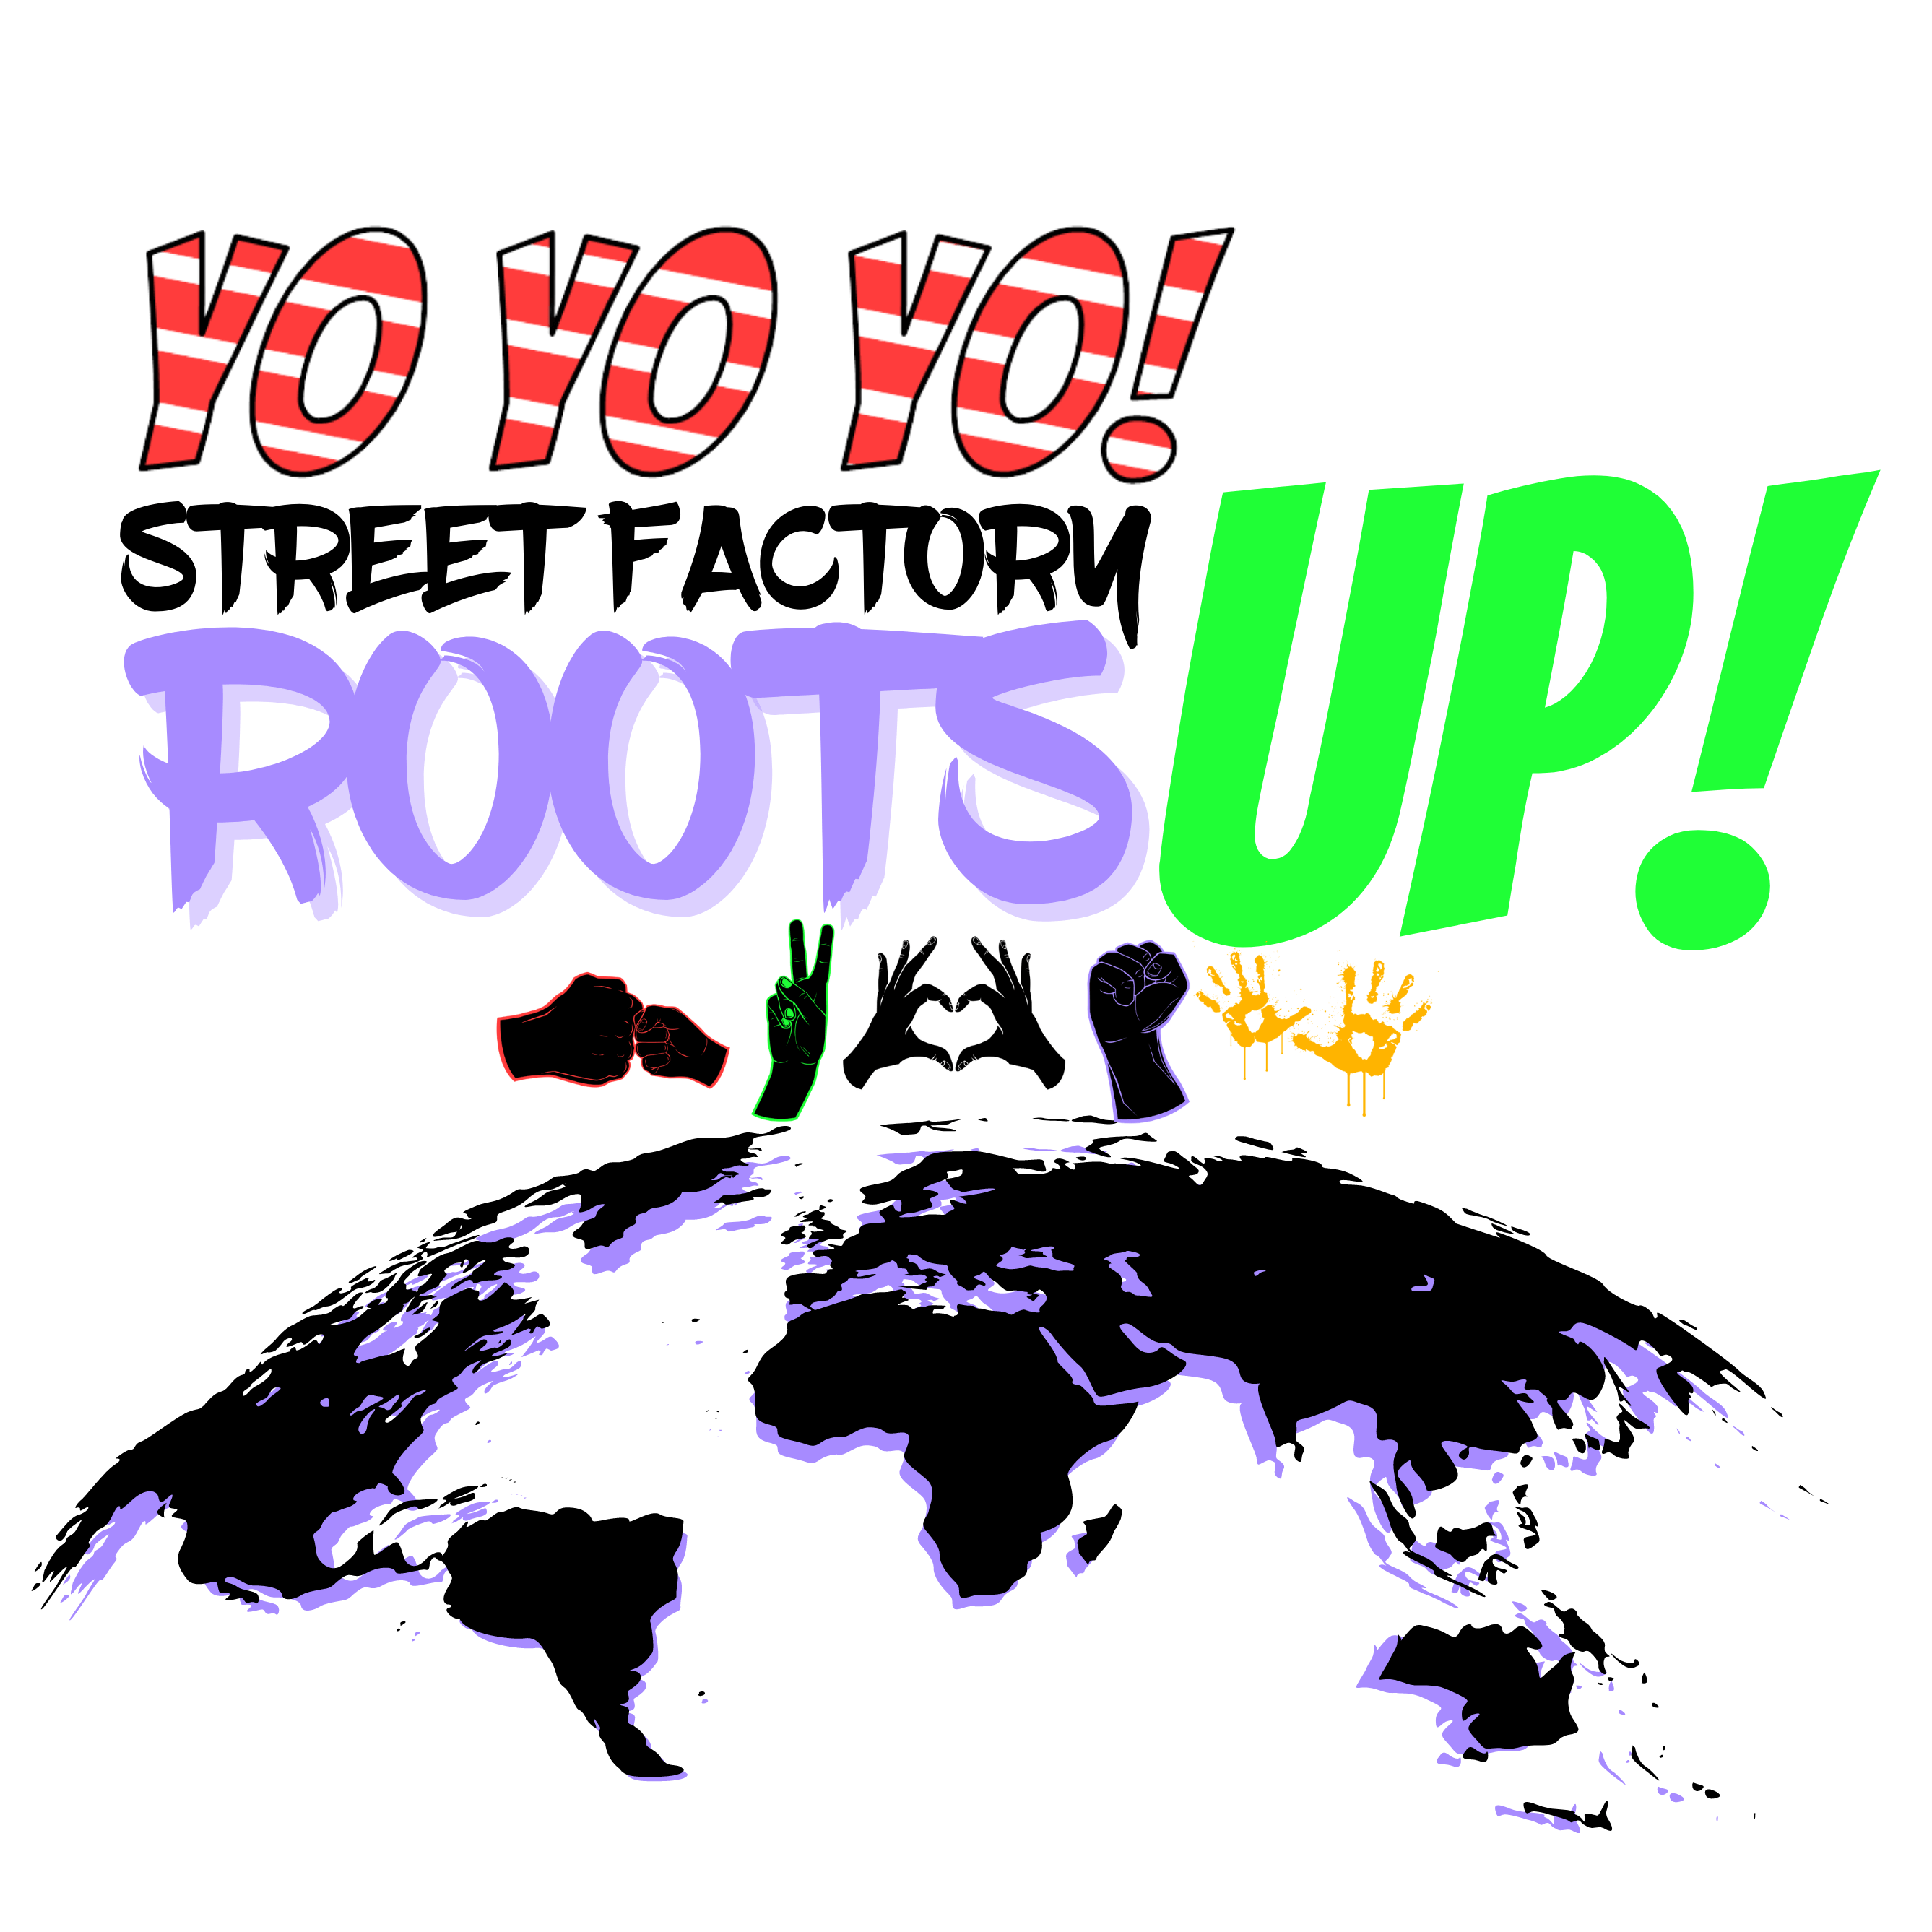 Street Factory's Roots Up! Hip Hop festival part of Plymouth's festive line-up